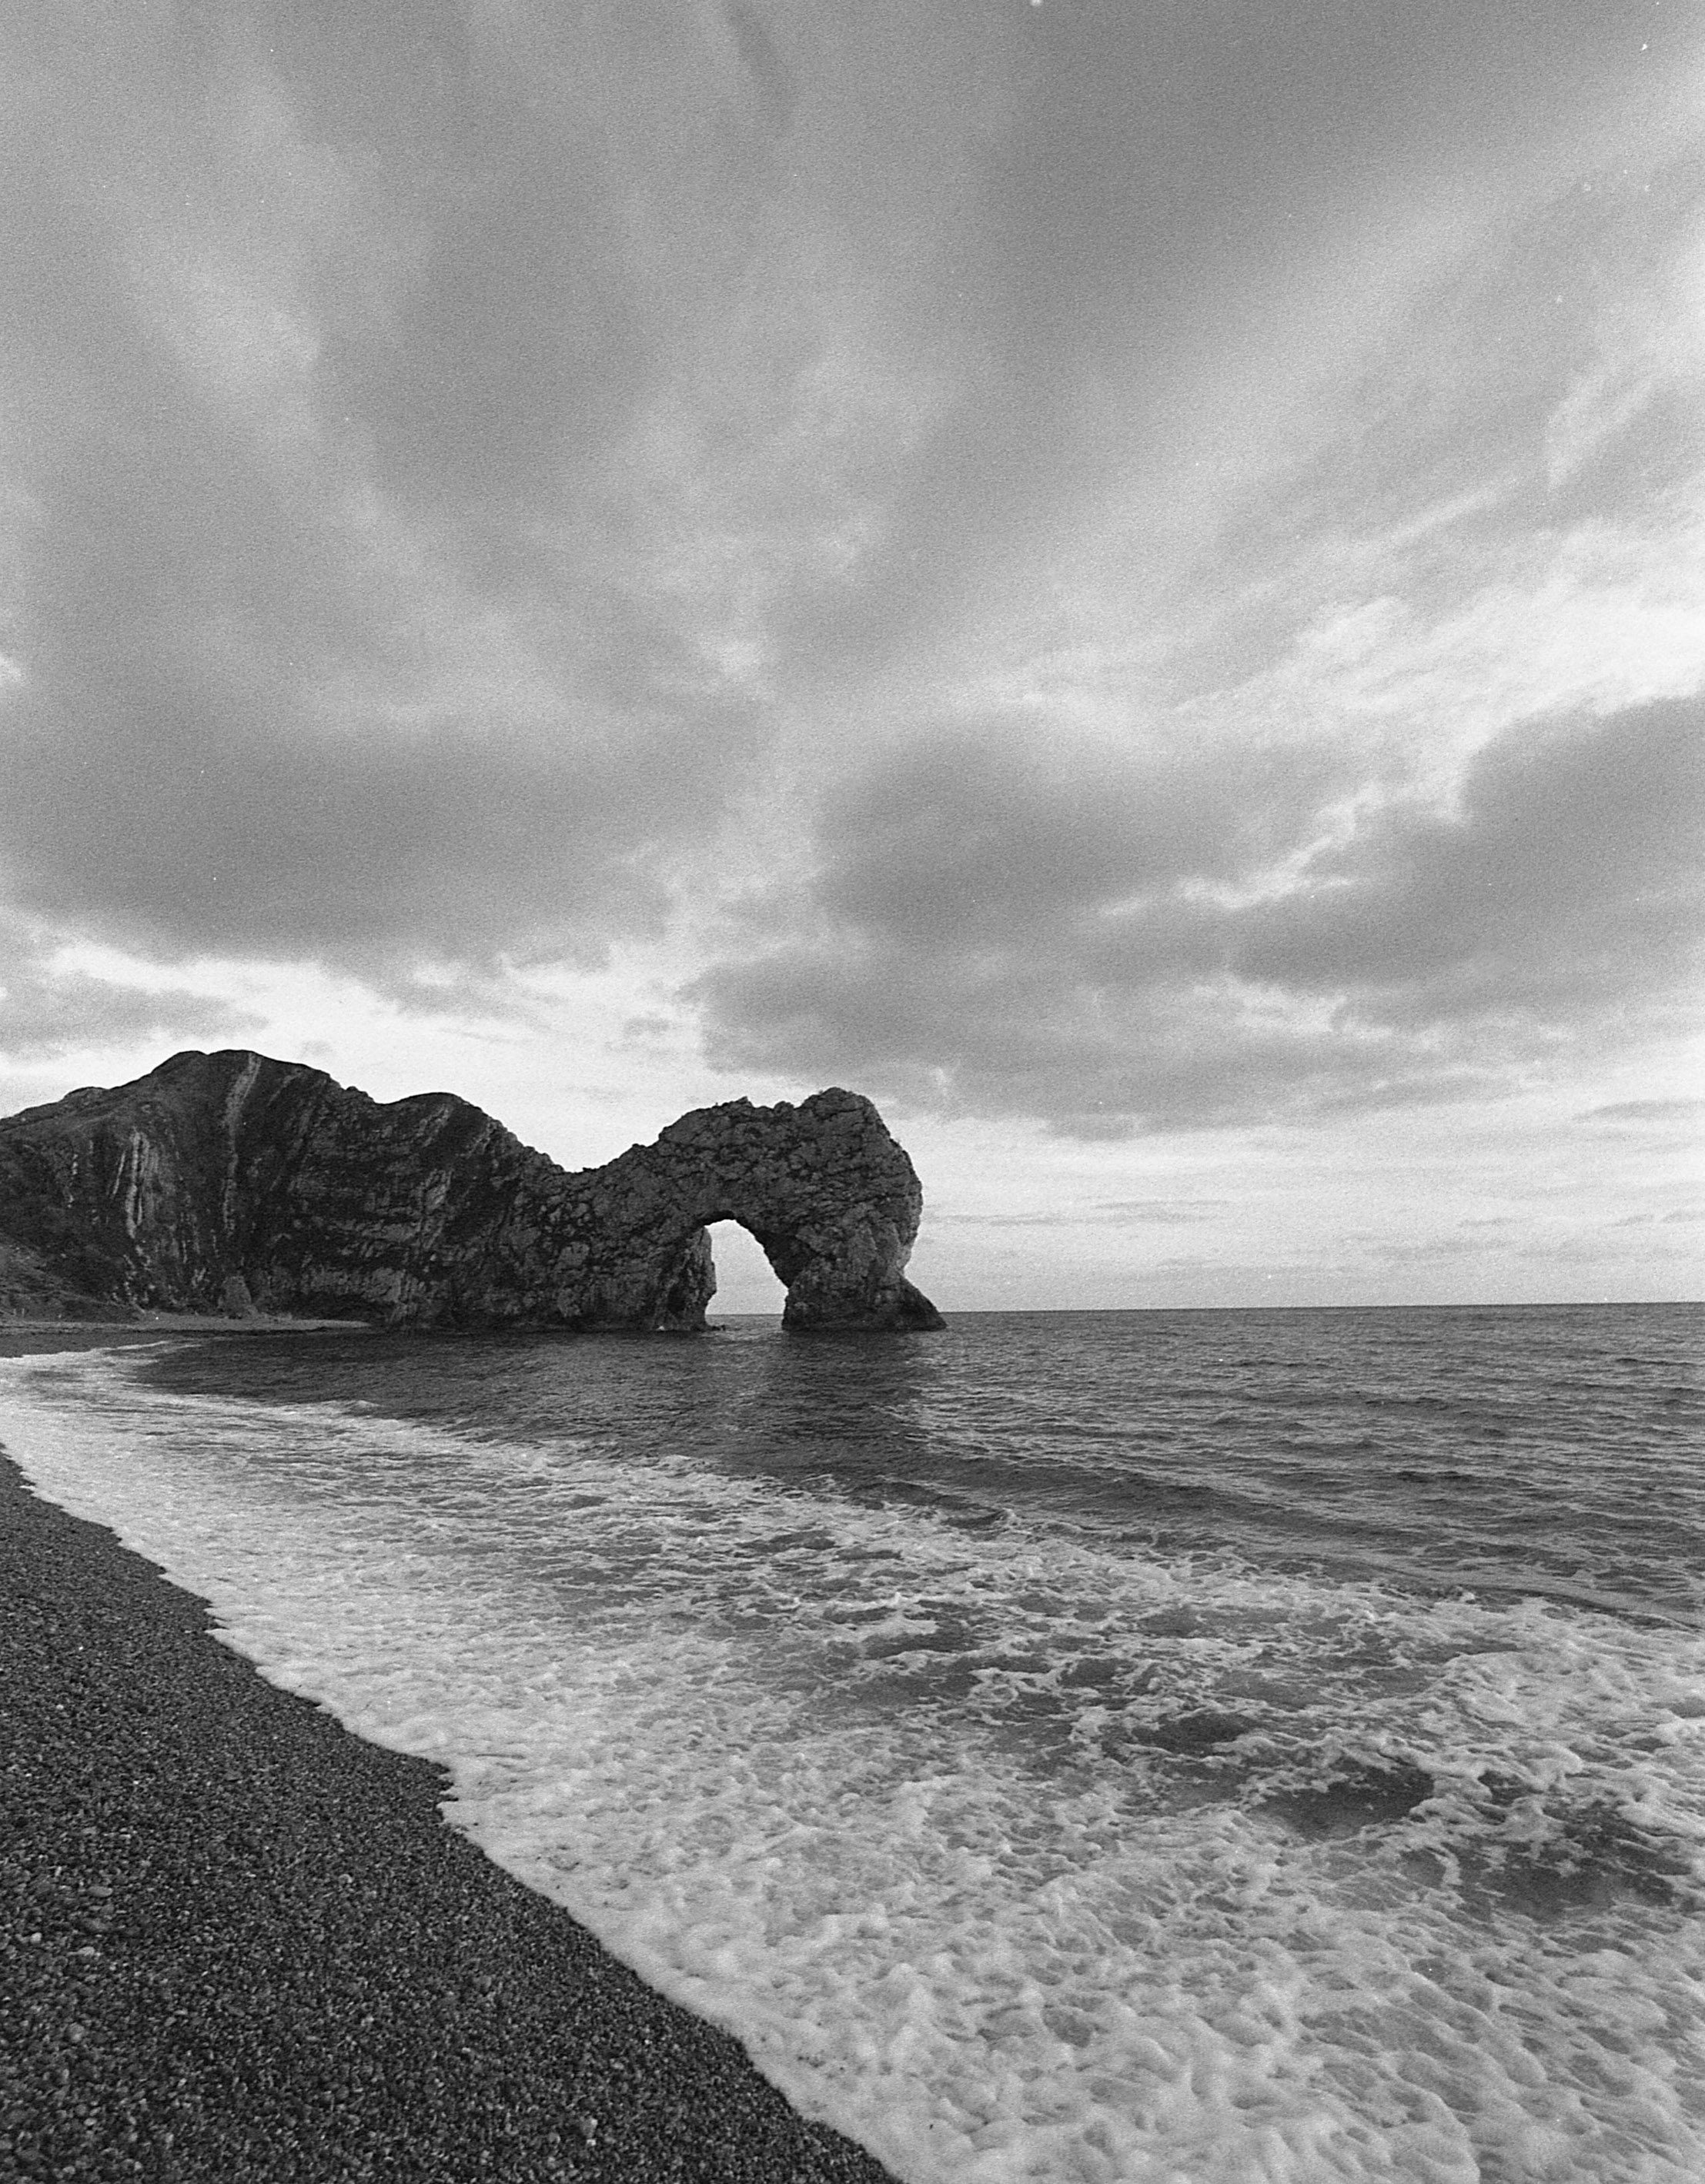 Durdle Door - Shot on HP5+ FILM BY jASON aEVERY